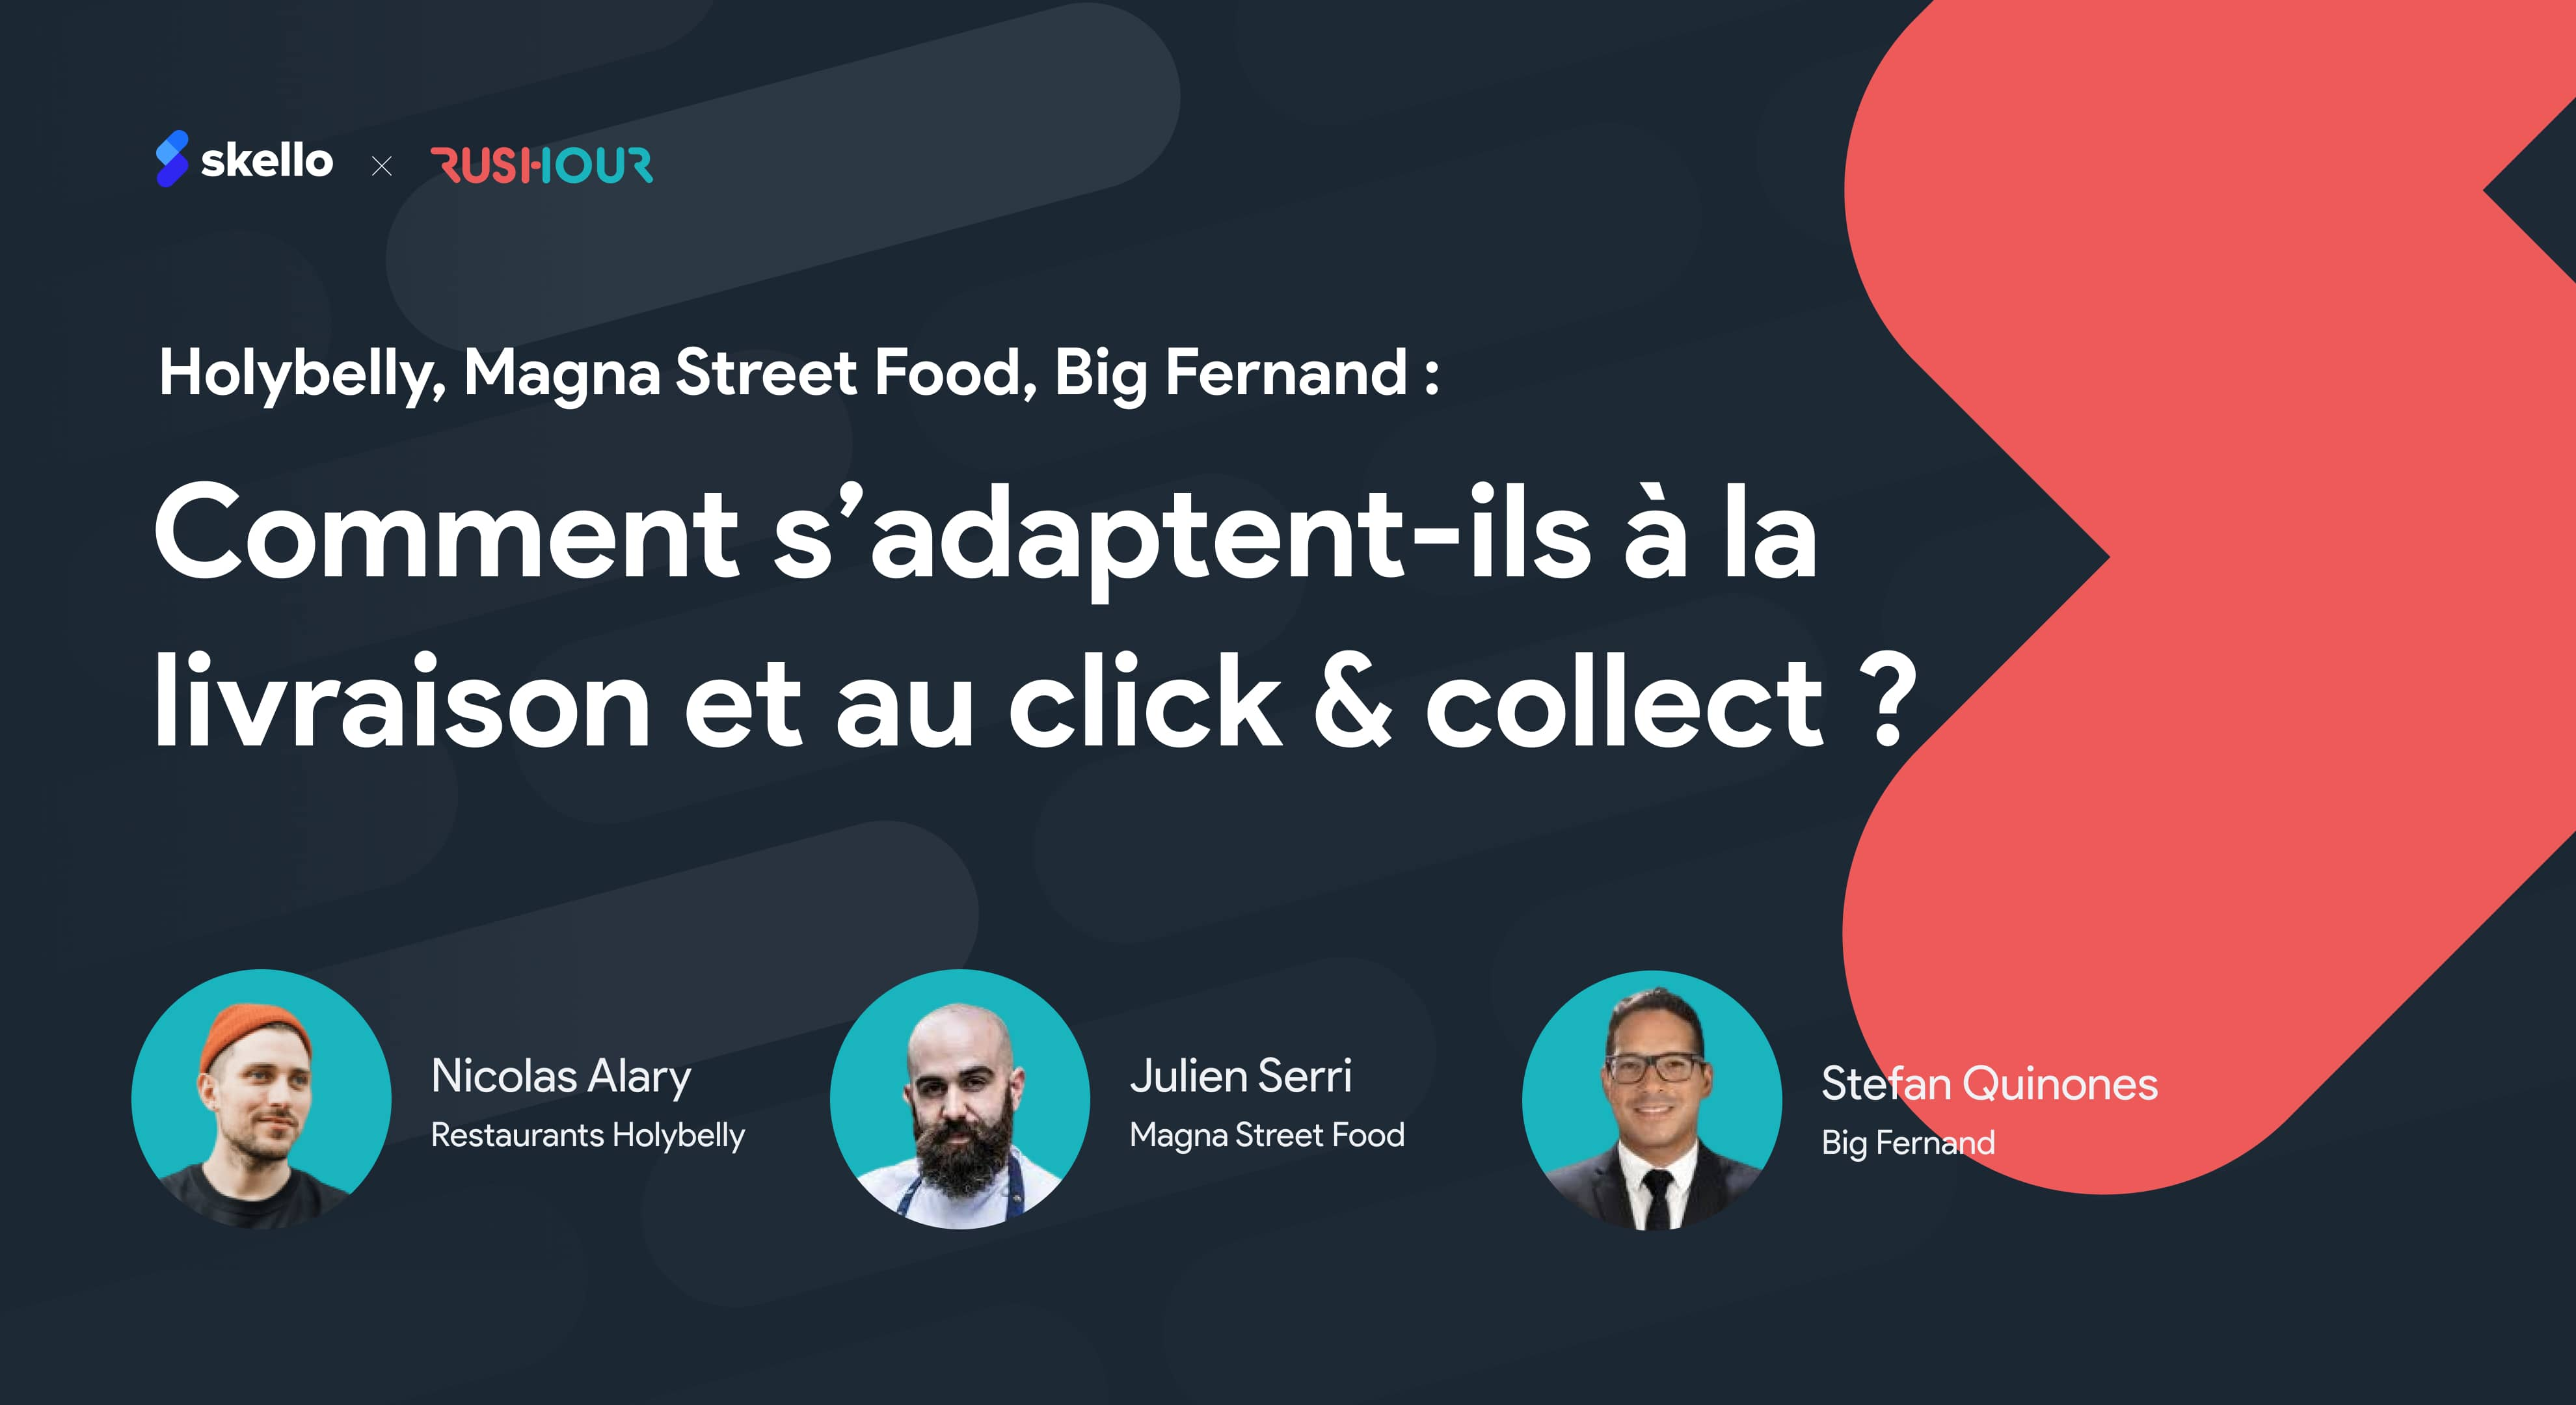 Livraison & Click Collect : comment font Holybelly, Magna Street Food & Big Fernand ?